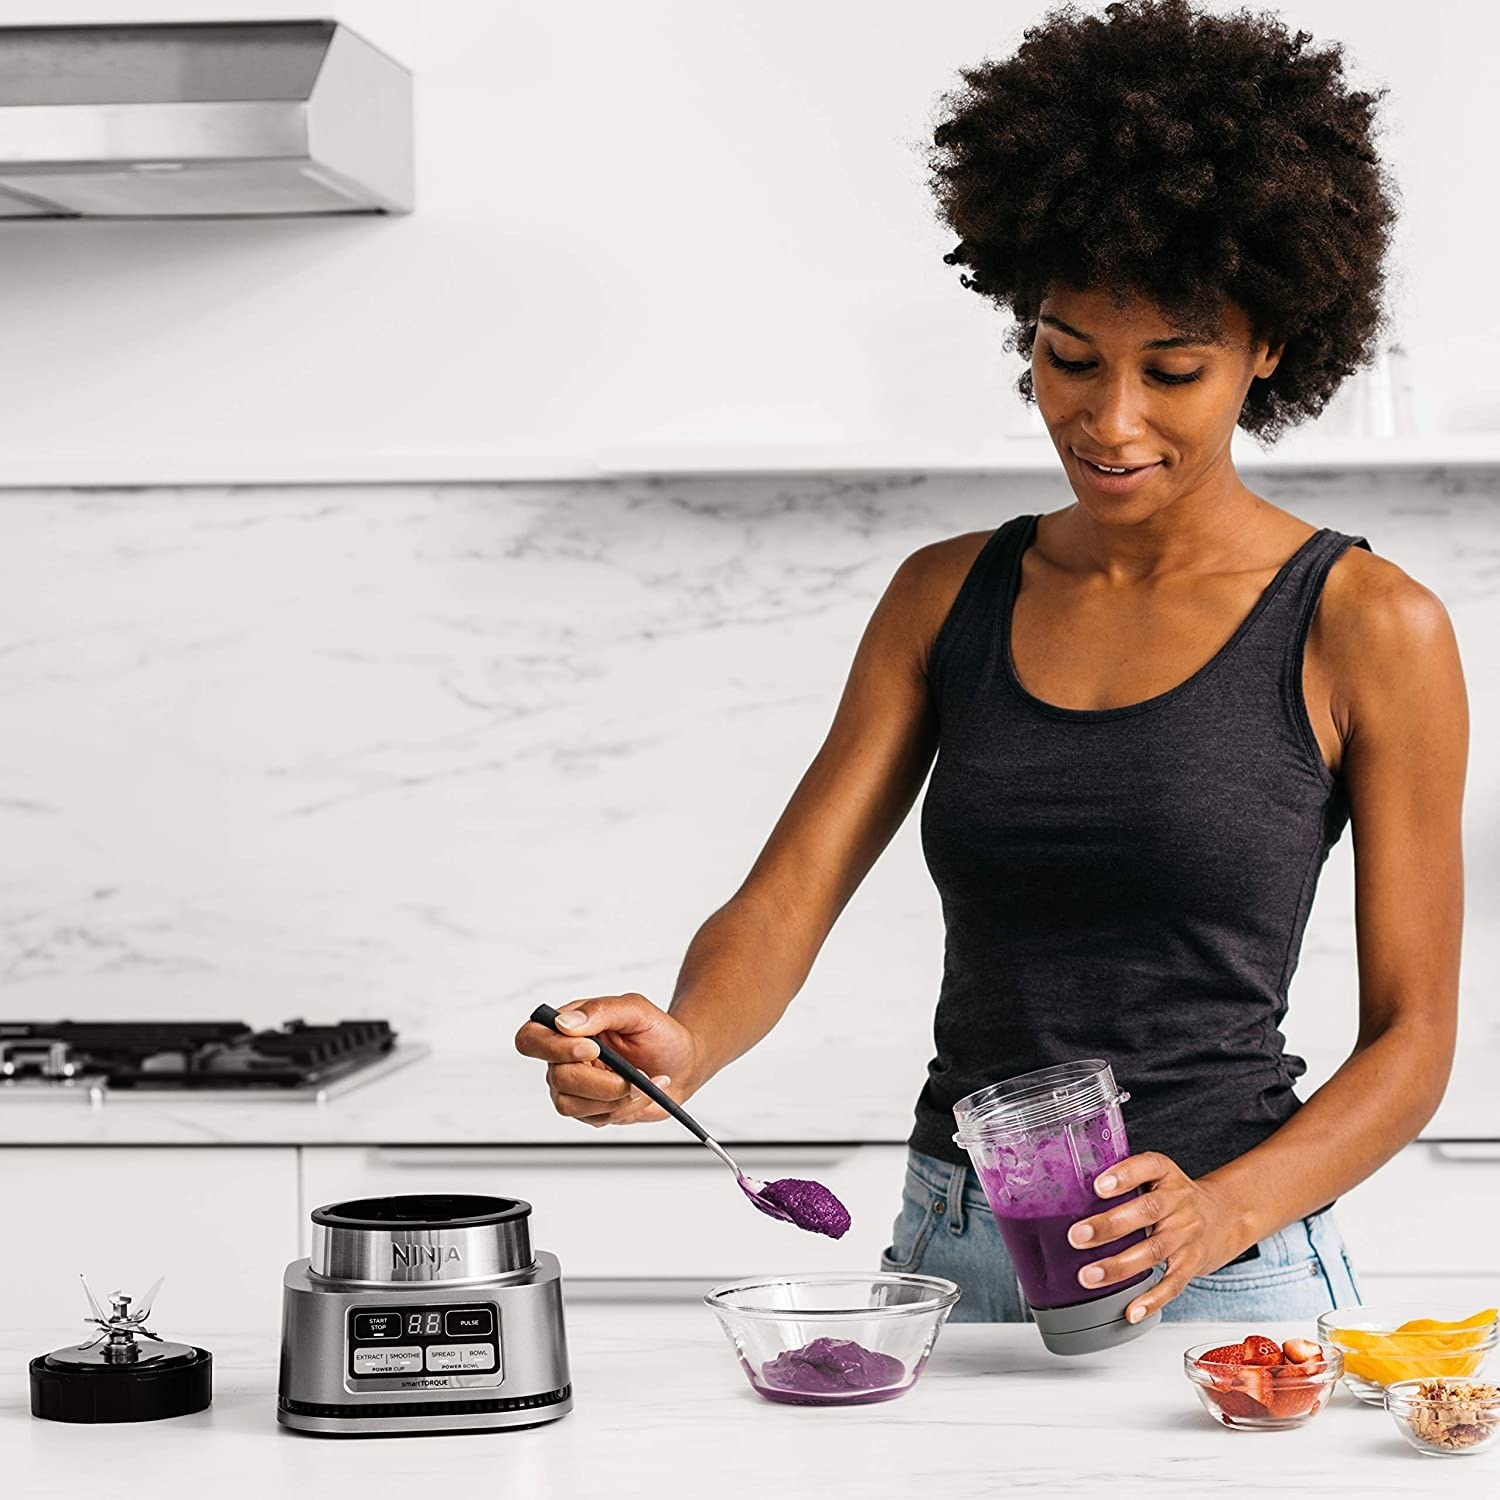 model spoons out thick acai from bottle